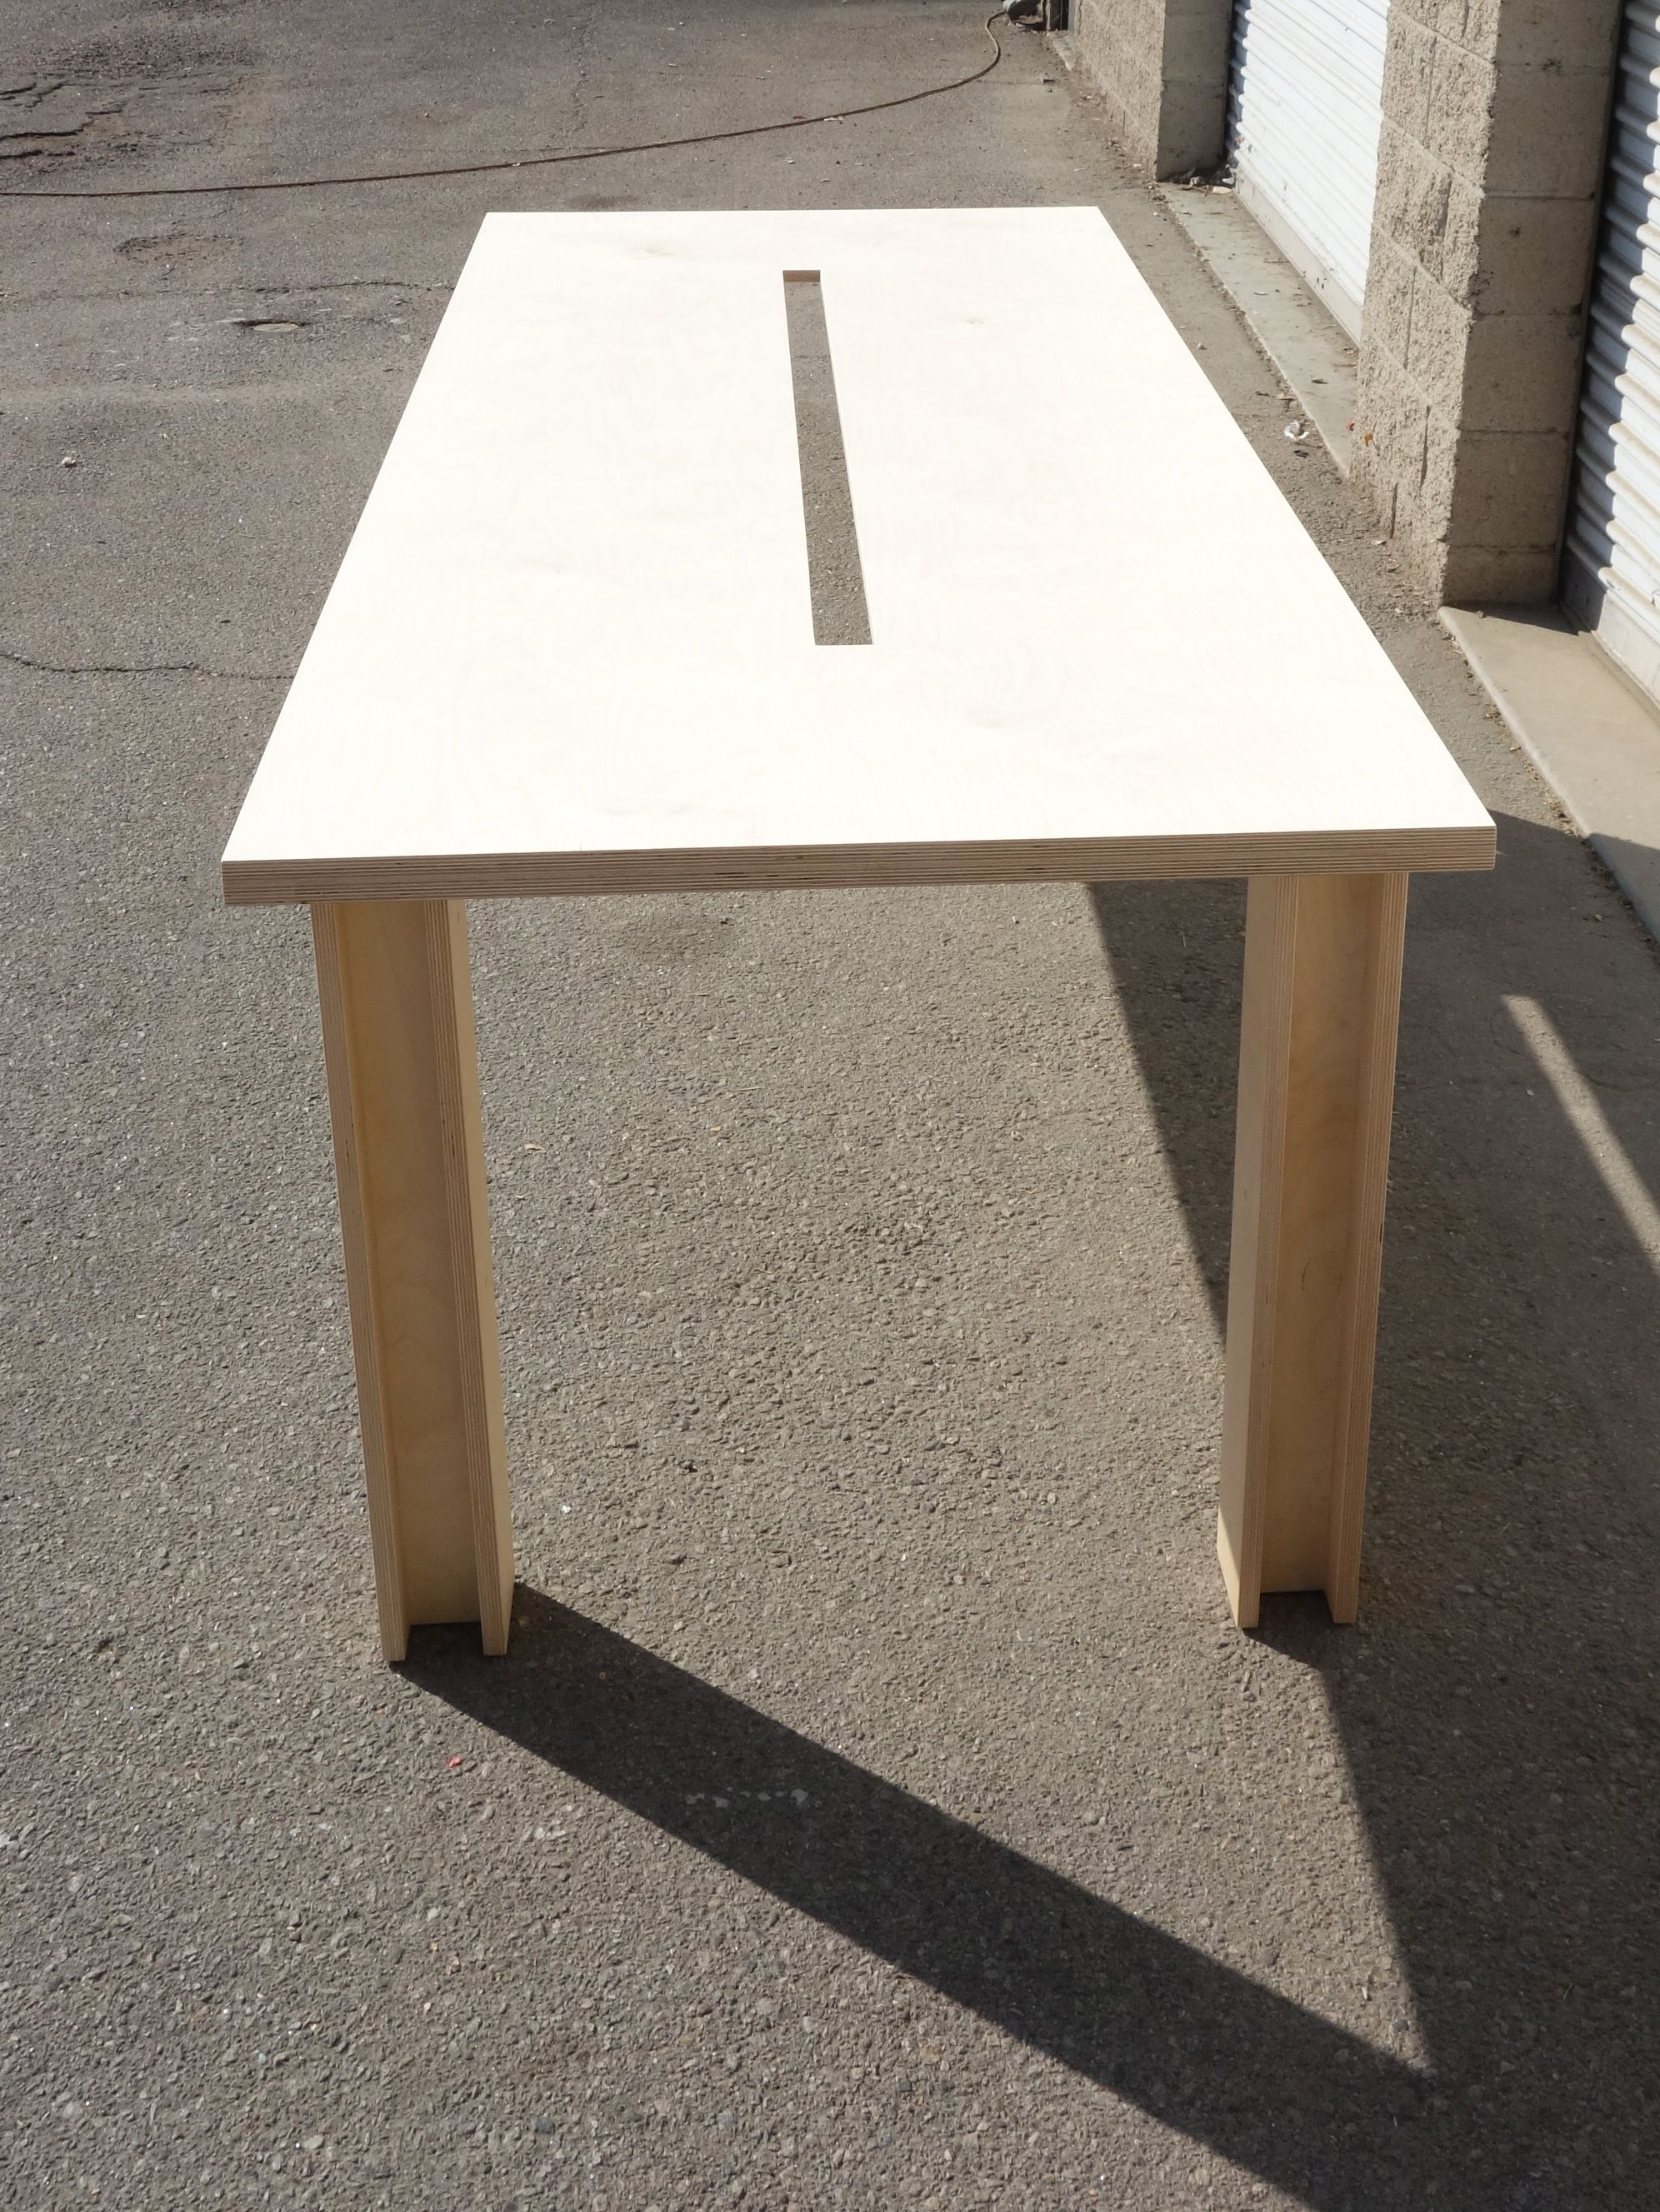 I-Beam Conference Table product image 1